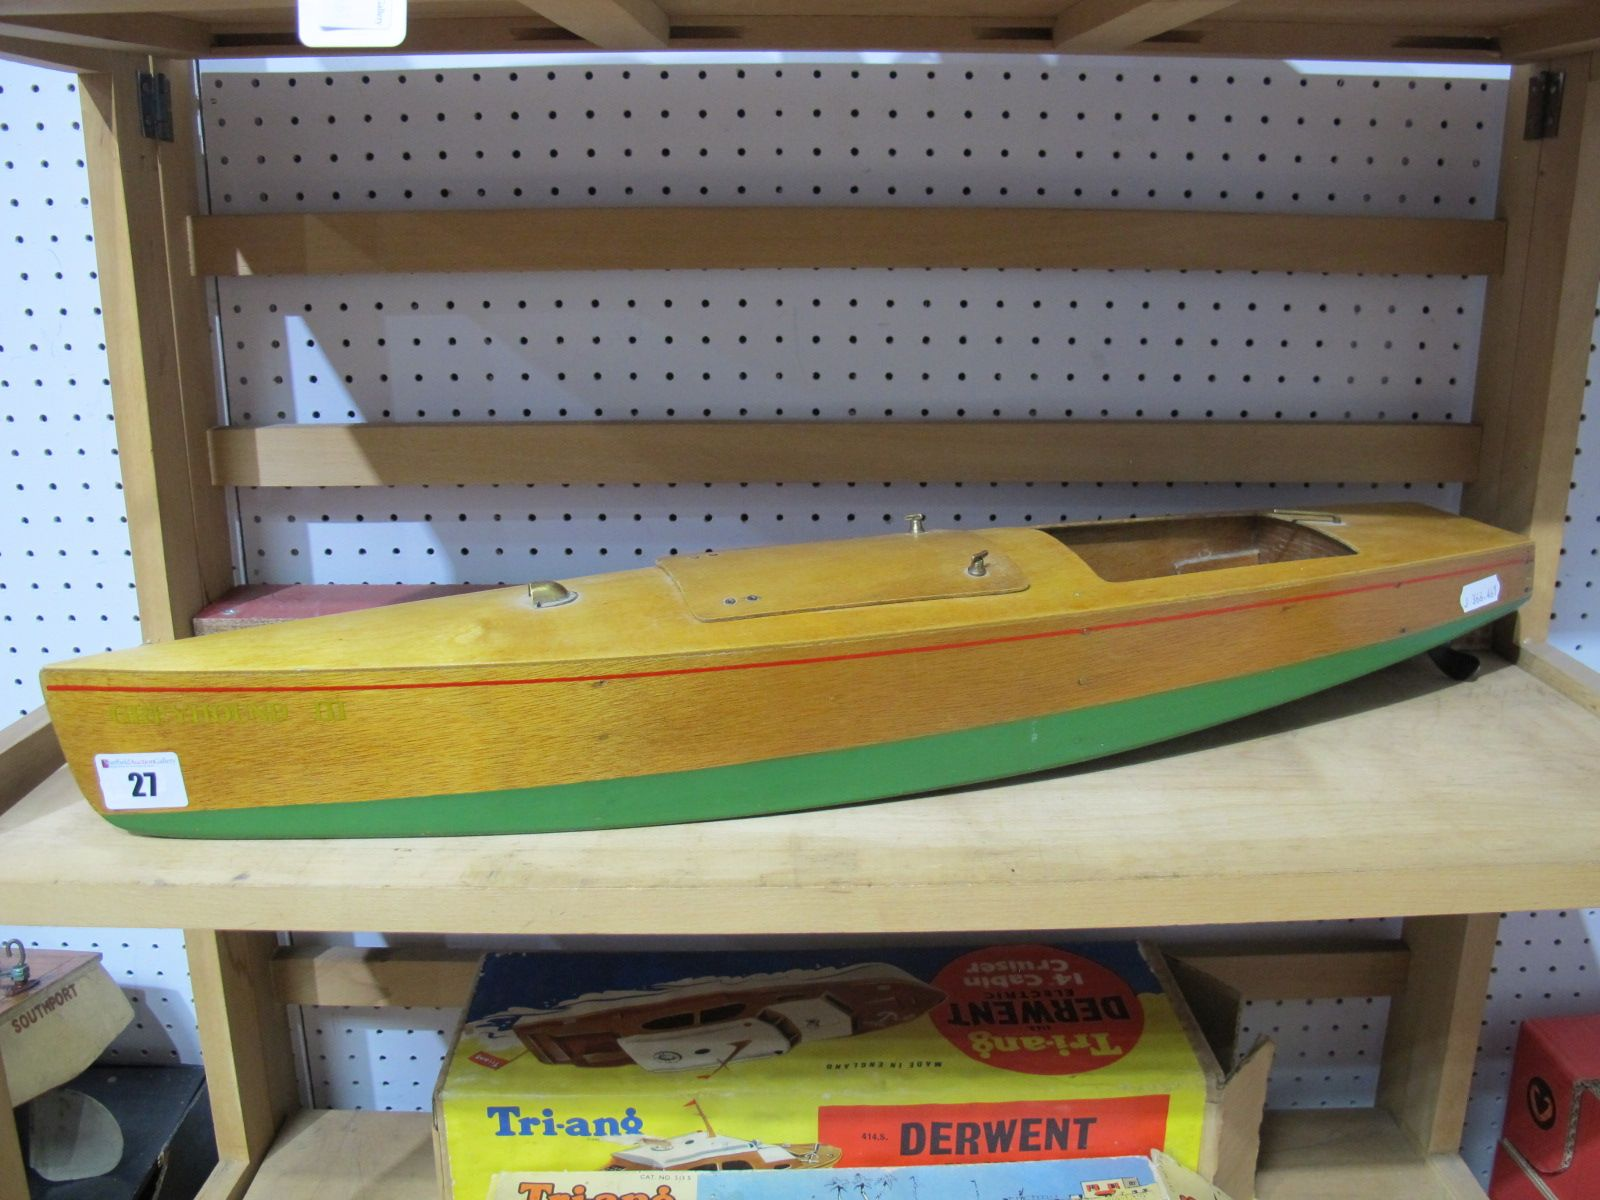 Lot 27 - A Mid XX Century Wooden Constructed Mono Hull Speed Boat Model Fitted With Electric Motor, '